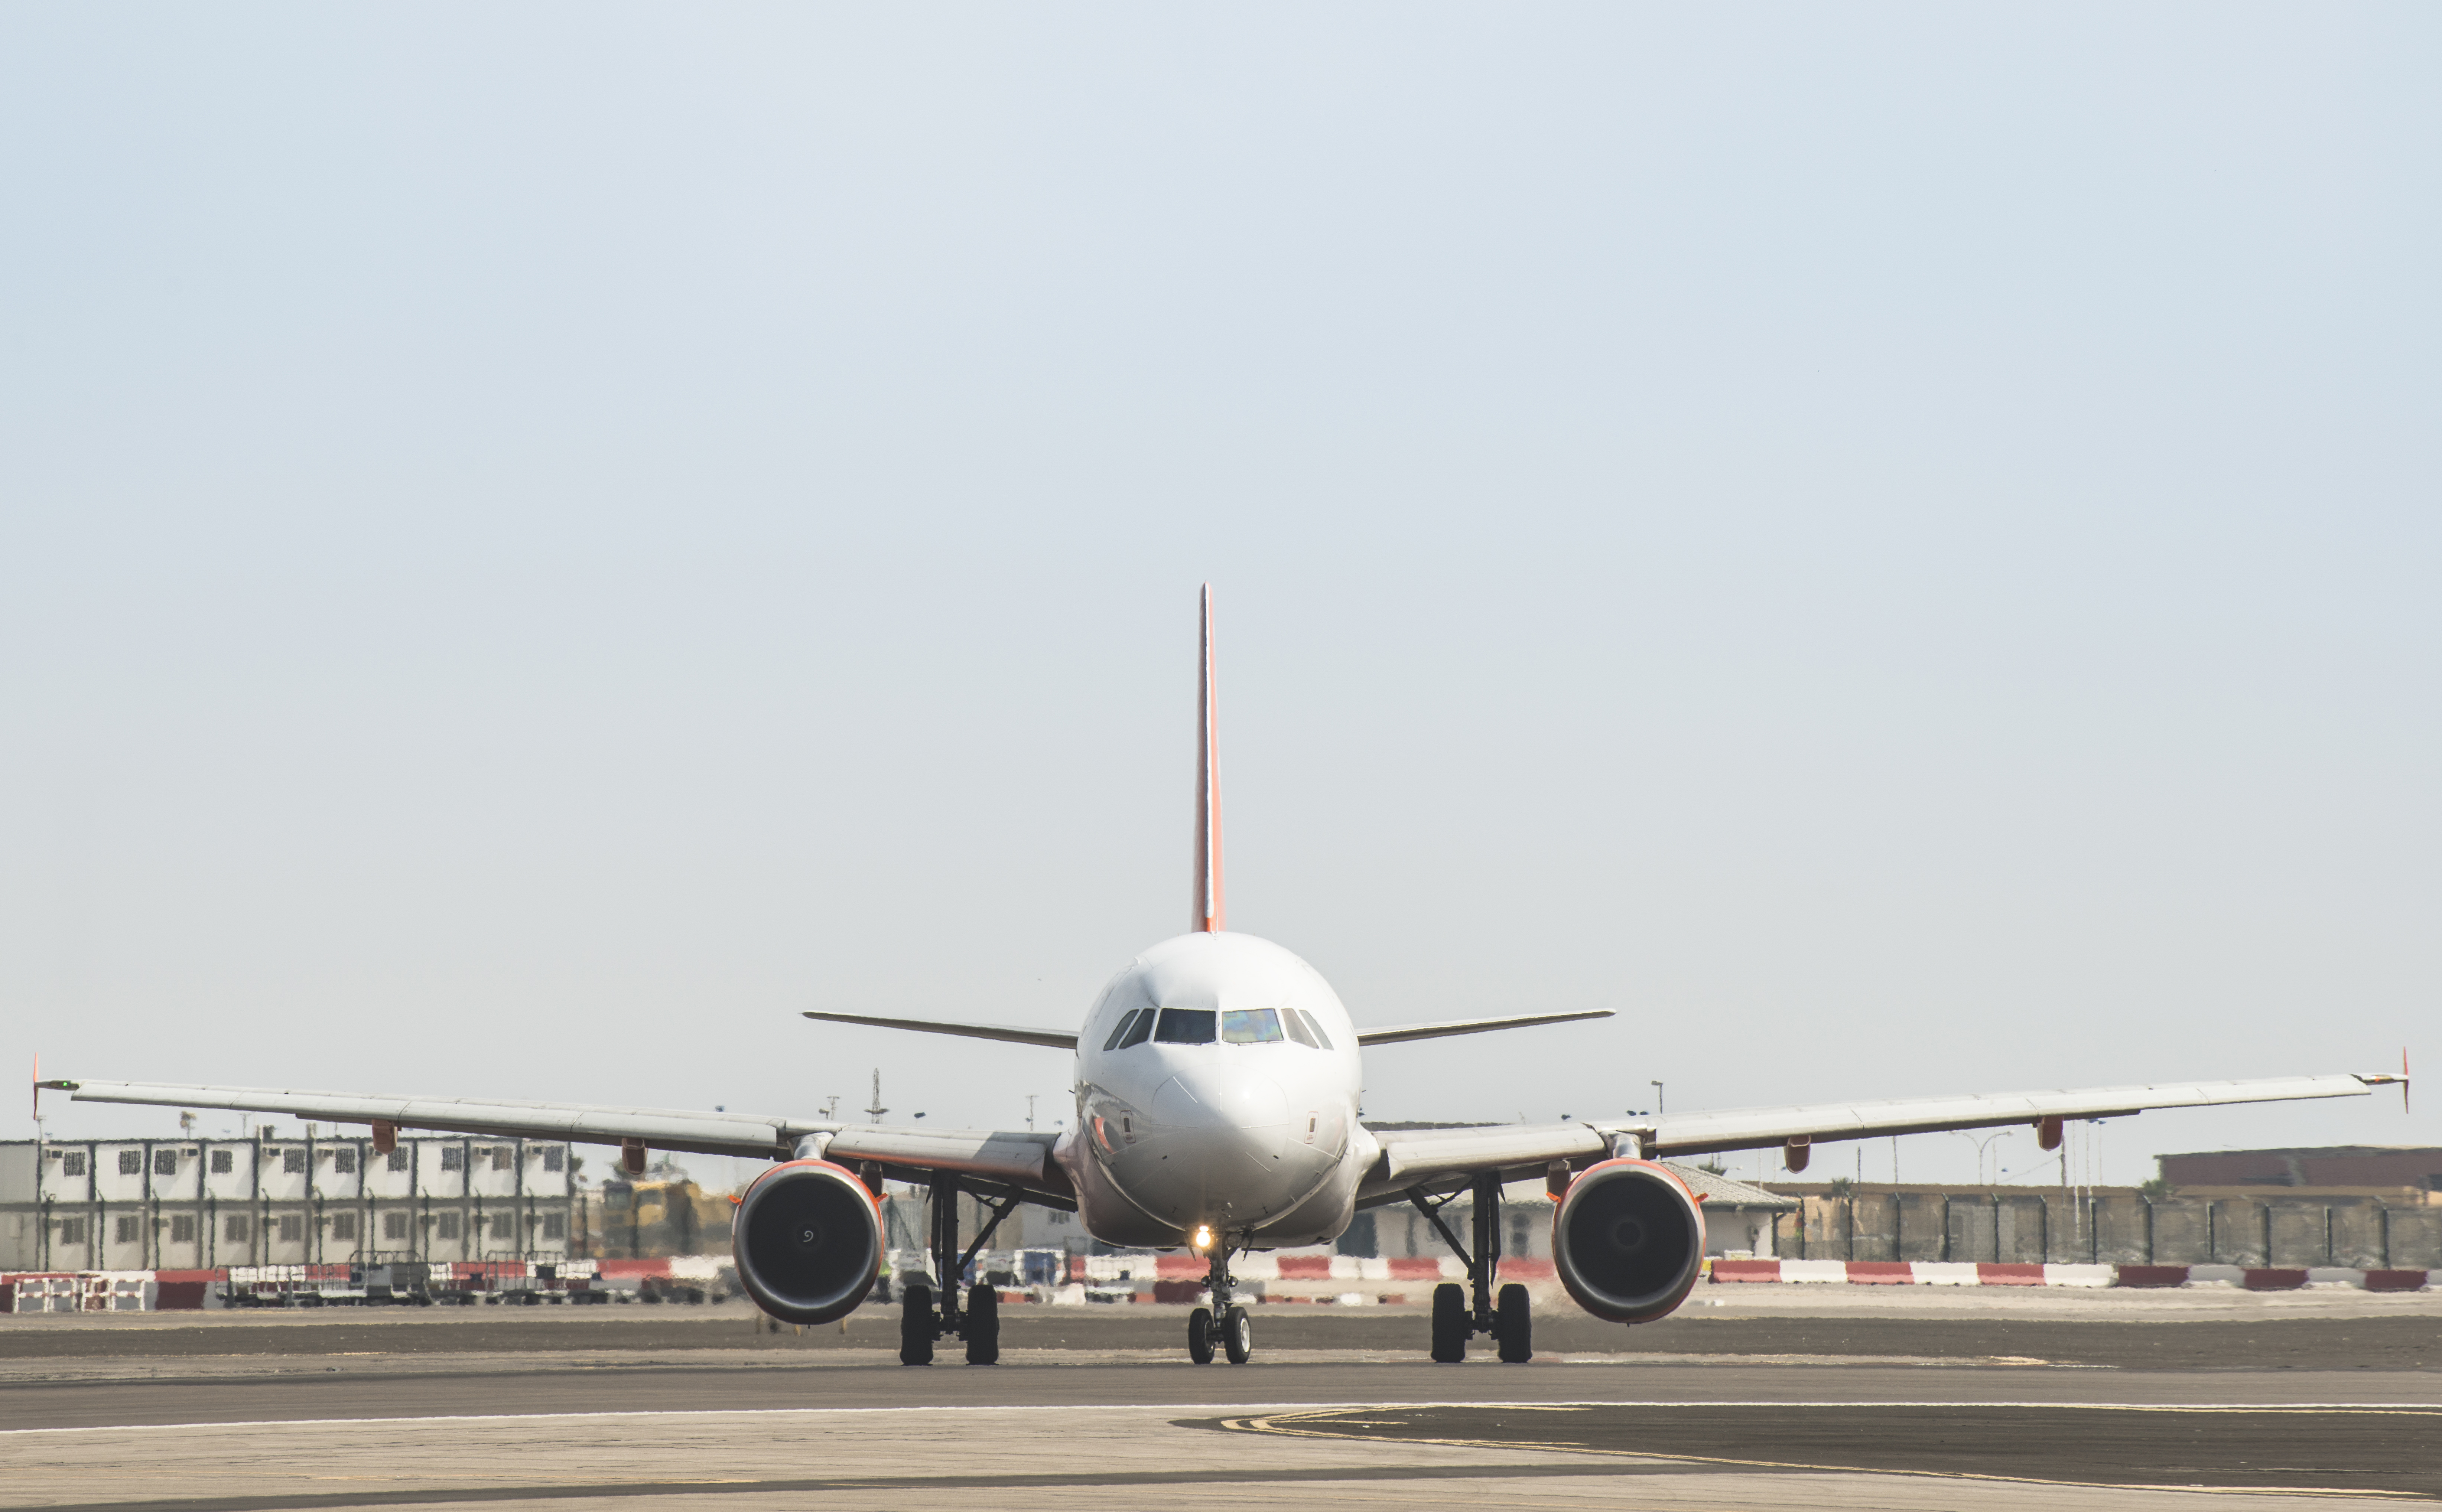 Sales and Use Tax Exemption Extended For Labor and Equipment Used in the Repair and Maintenance of Certain Aircraft